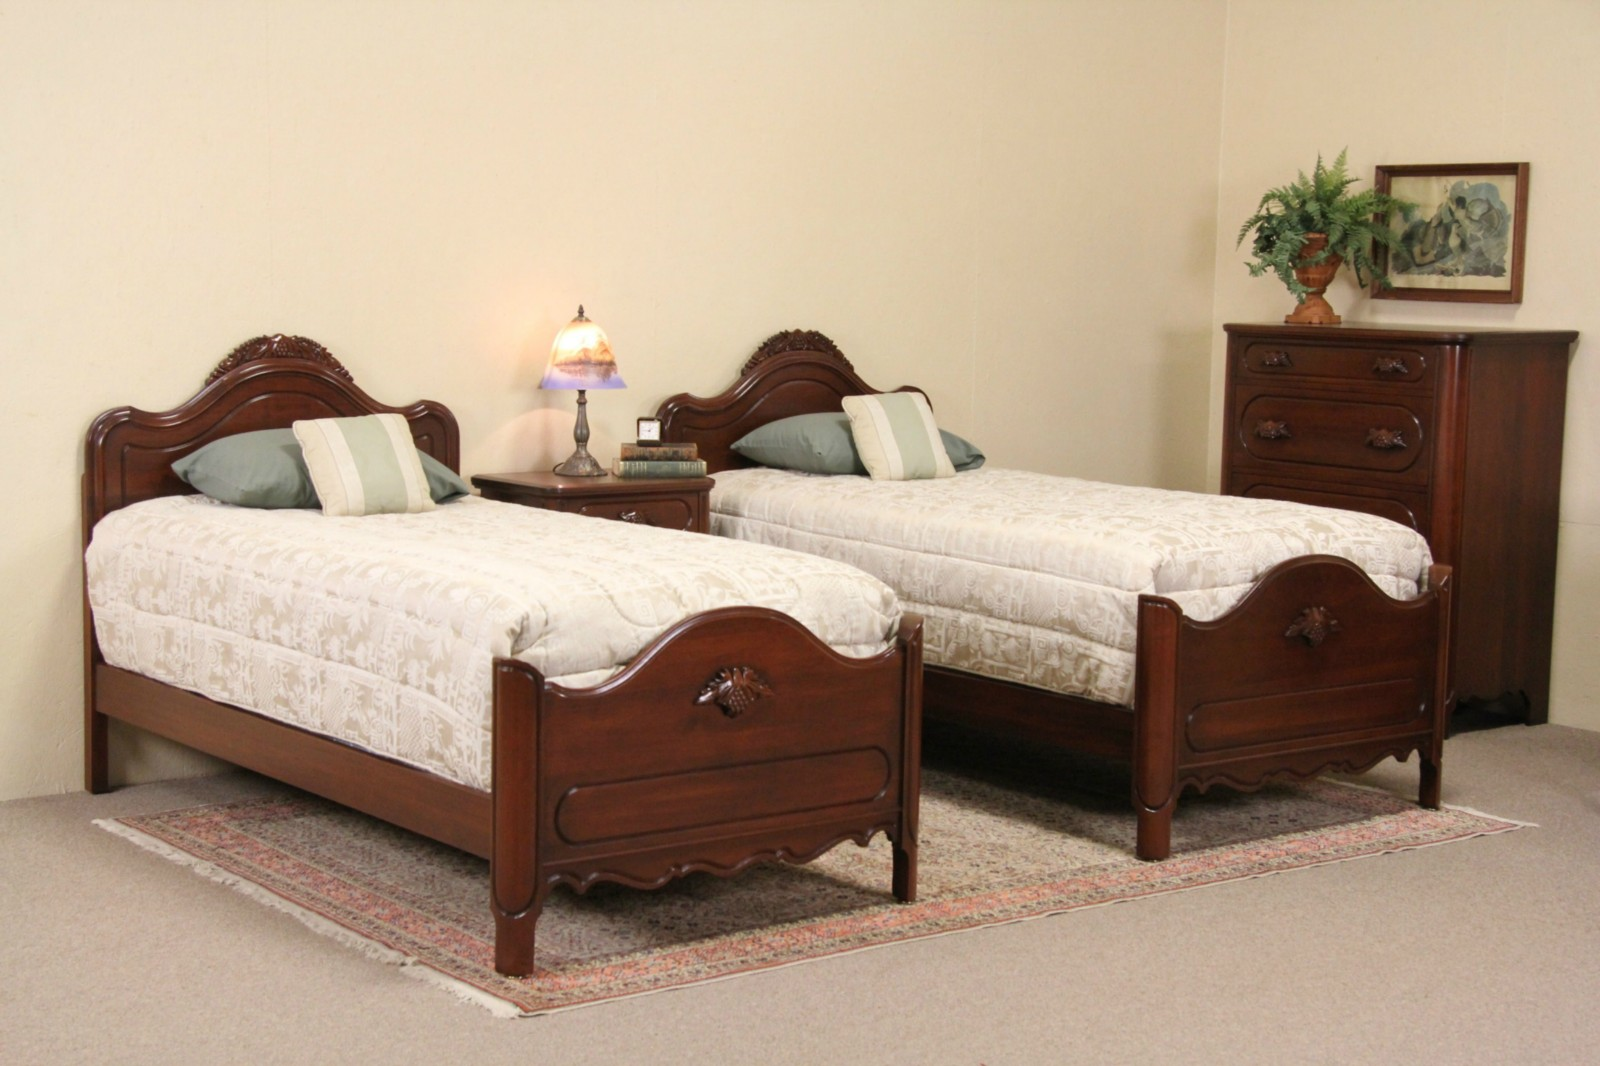 Davis Signed 1950 Vintage 4 Piece Bedroom Set, Twin Beds, Carved Grapes